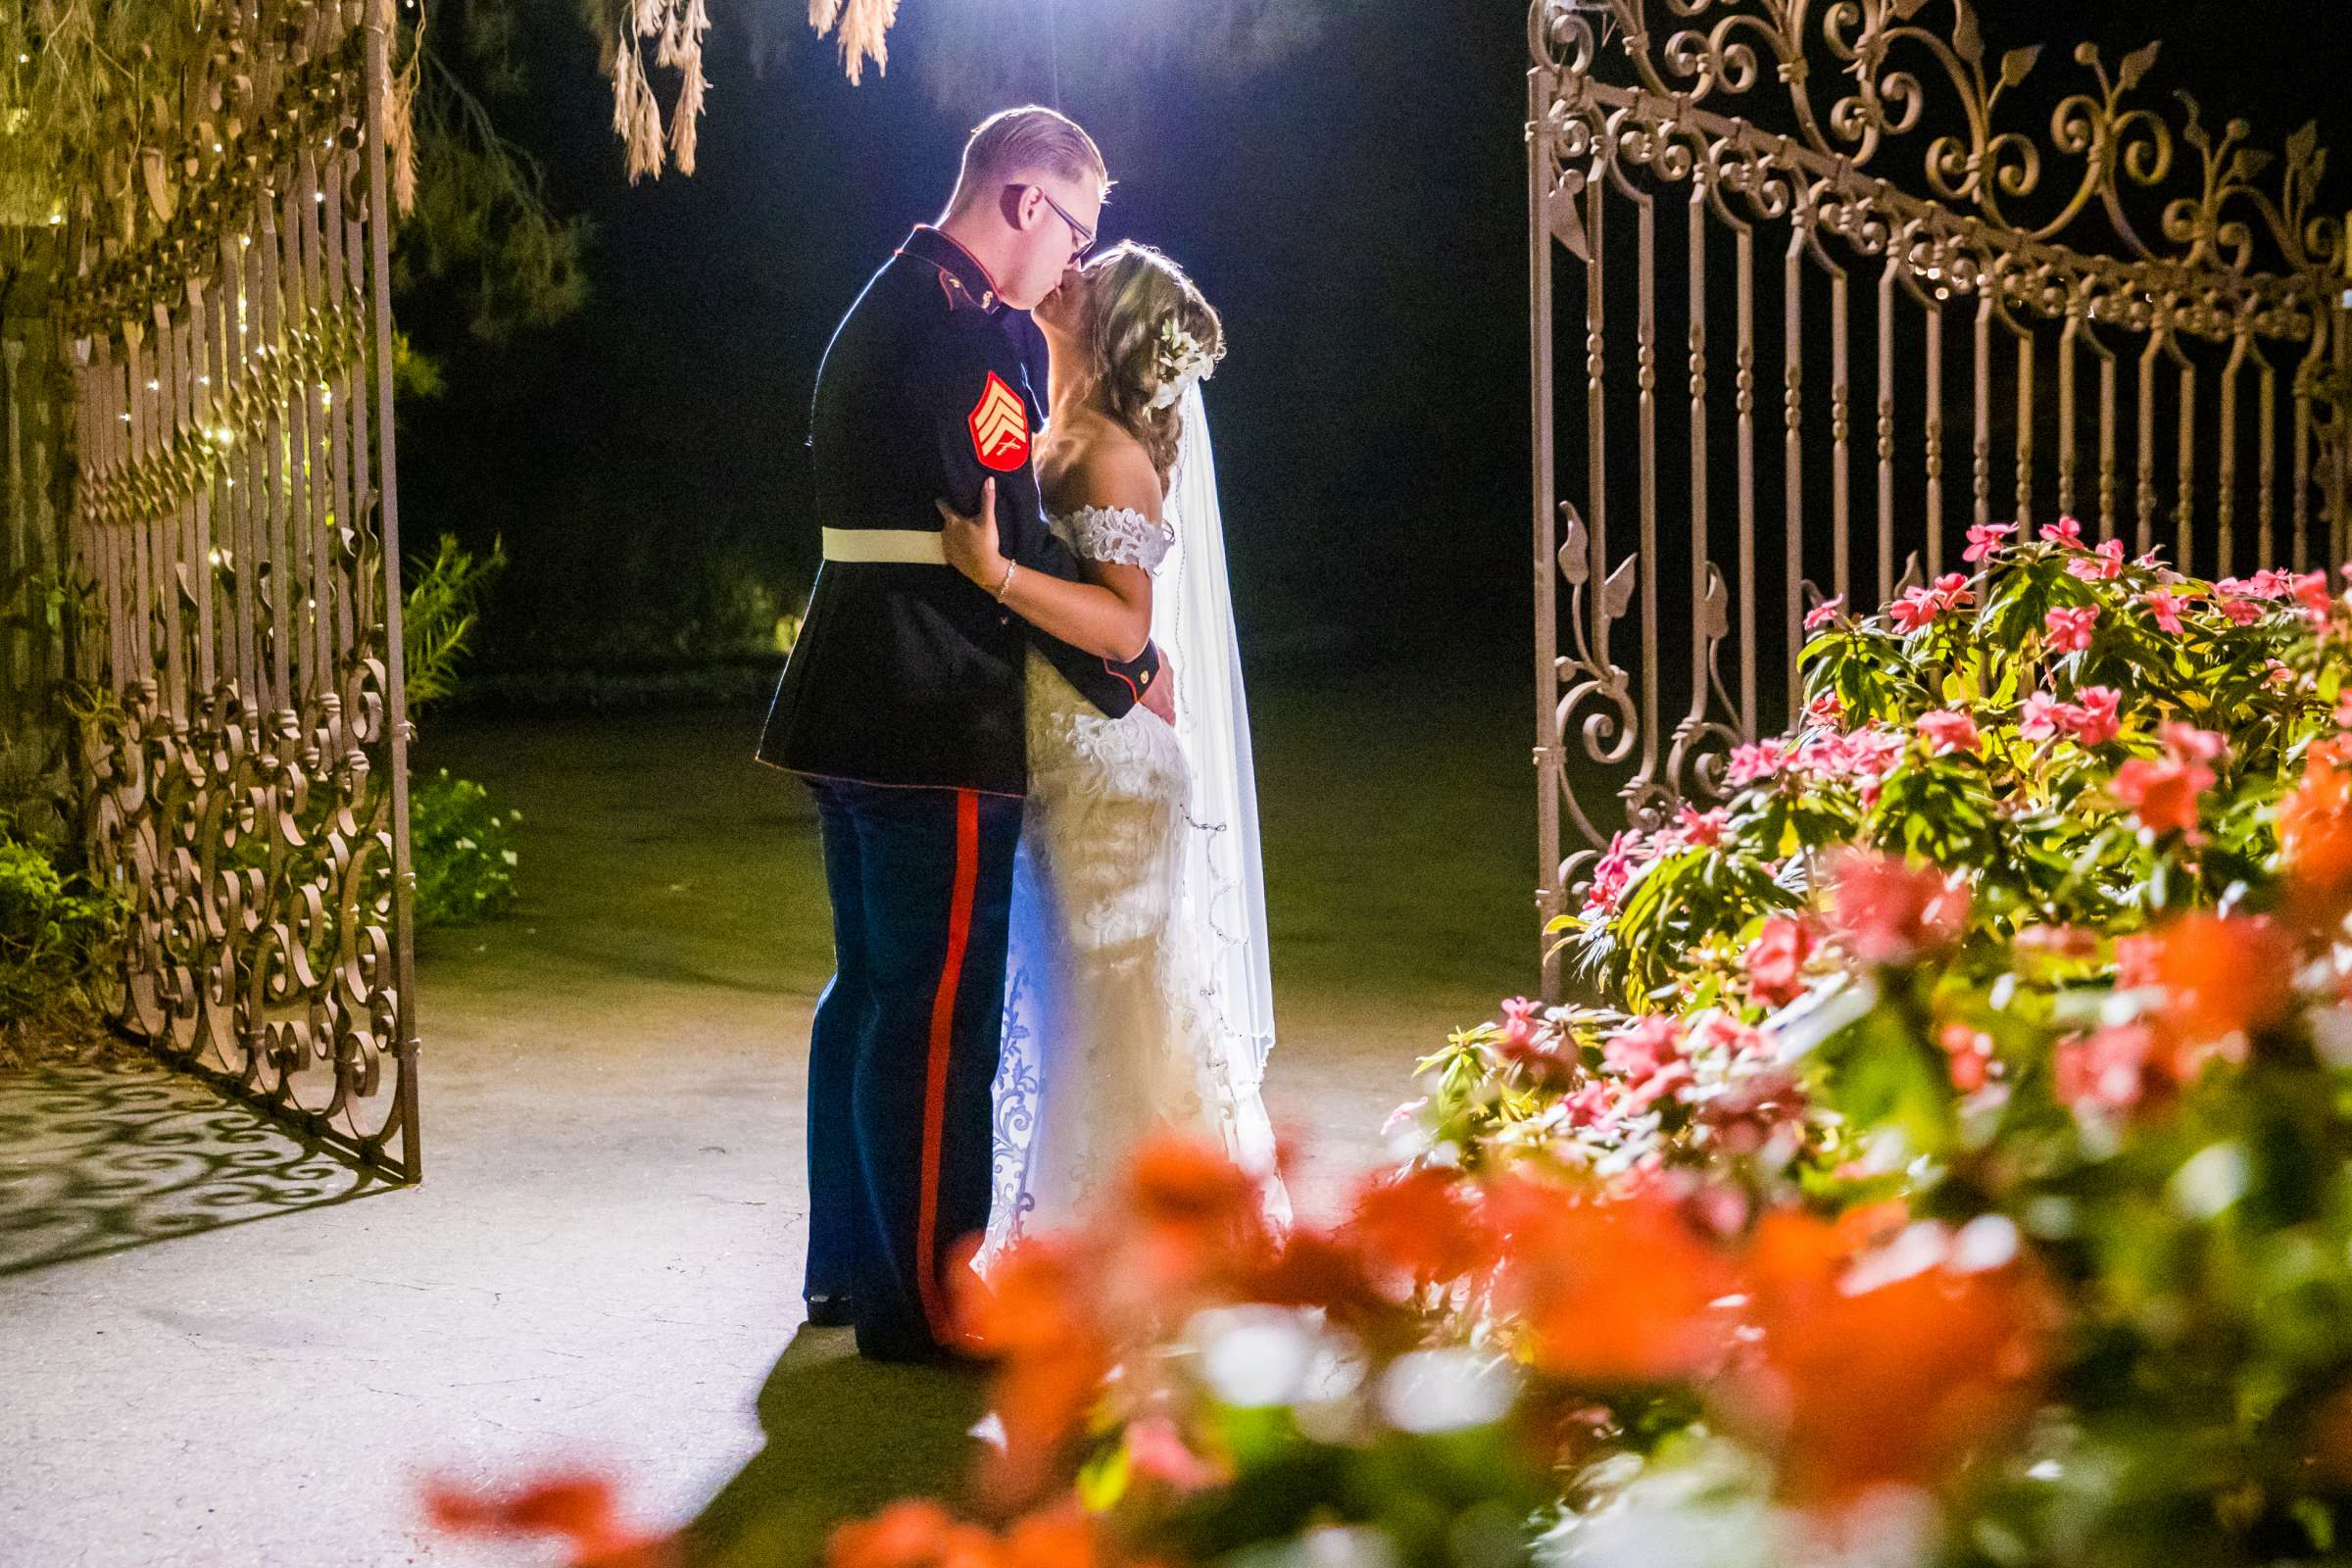 Ethereal Gardens Wedding, Danielle and Ben Wedding Photo #49 by True Photography